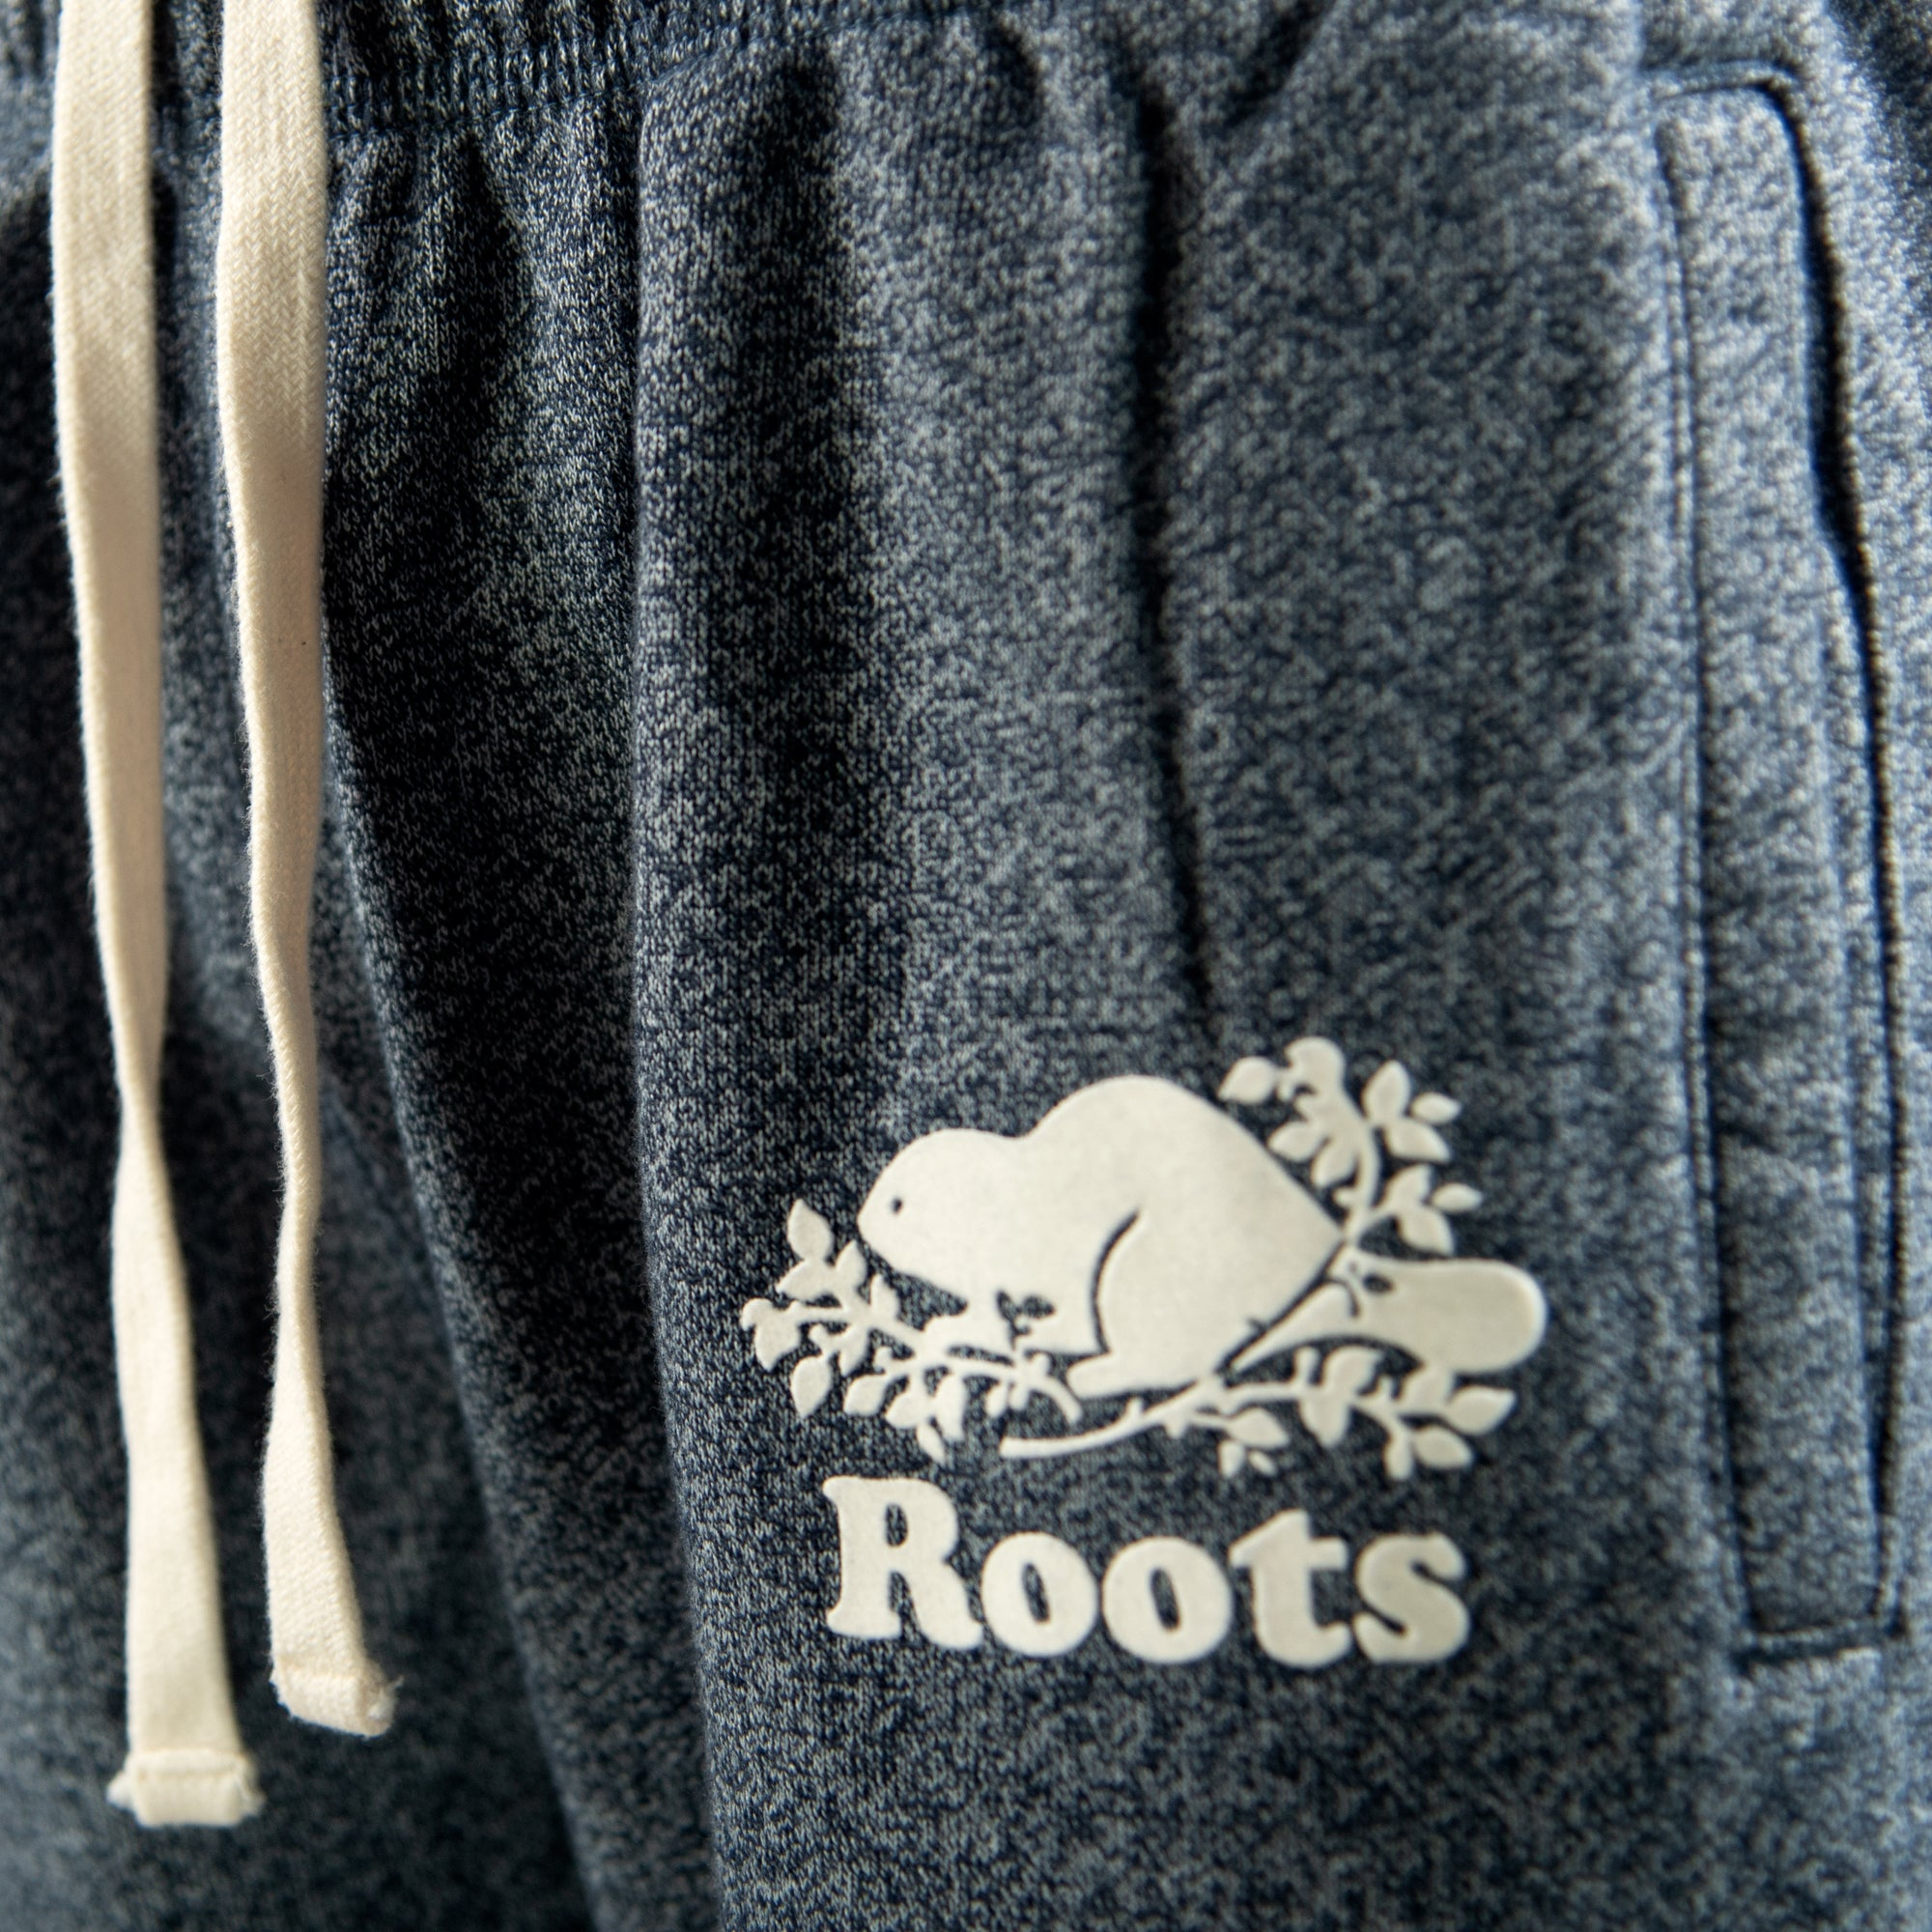 Maple Leafs Roots Ladies Original Sweatpants